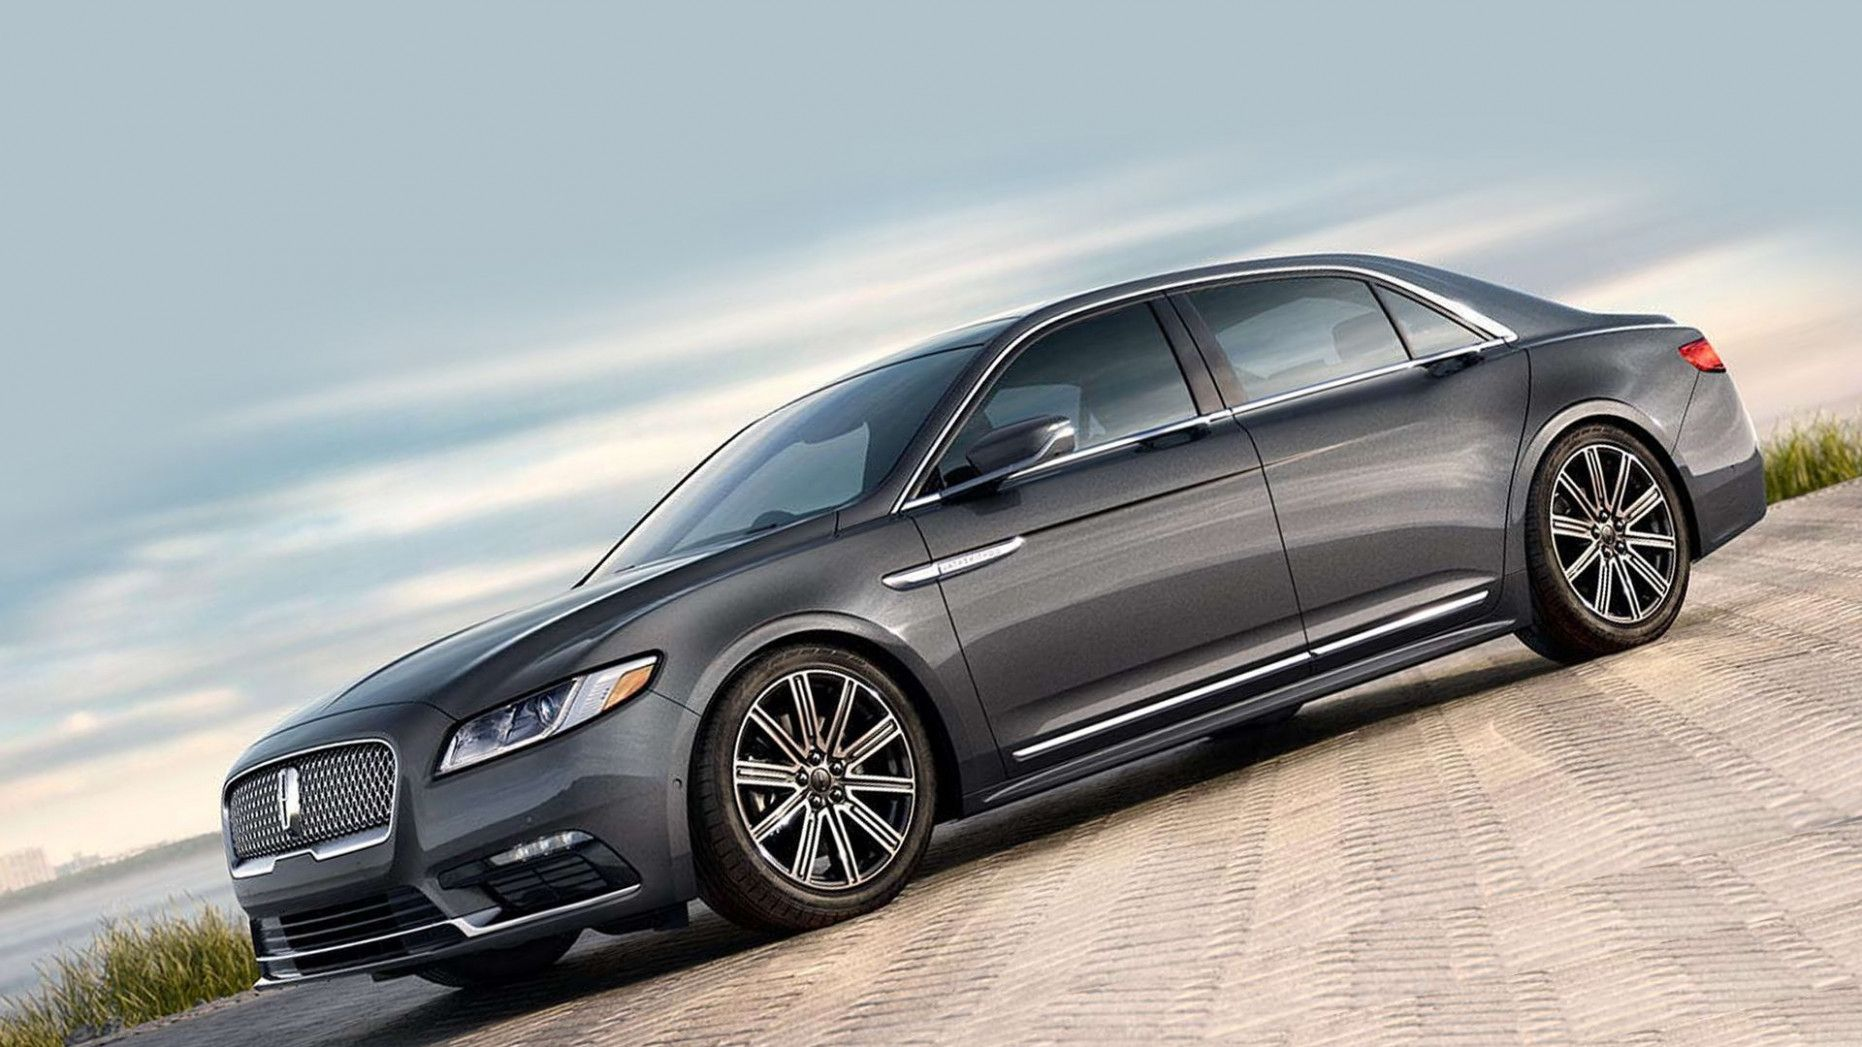 2021 lincoln mkz hybrid price design and review 2021